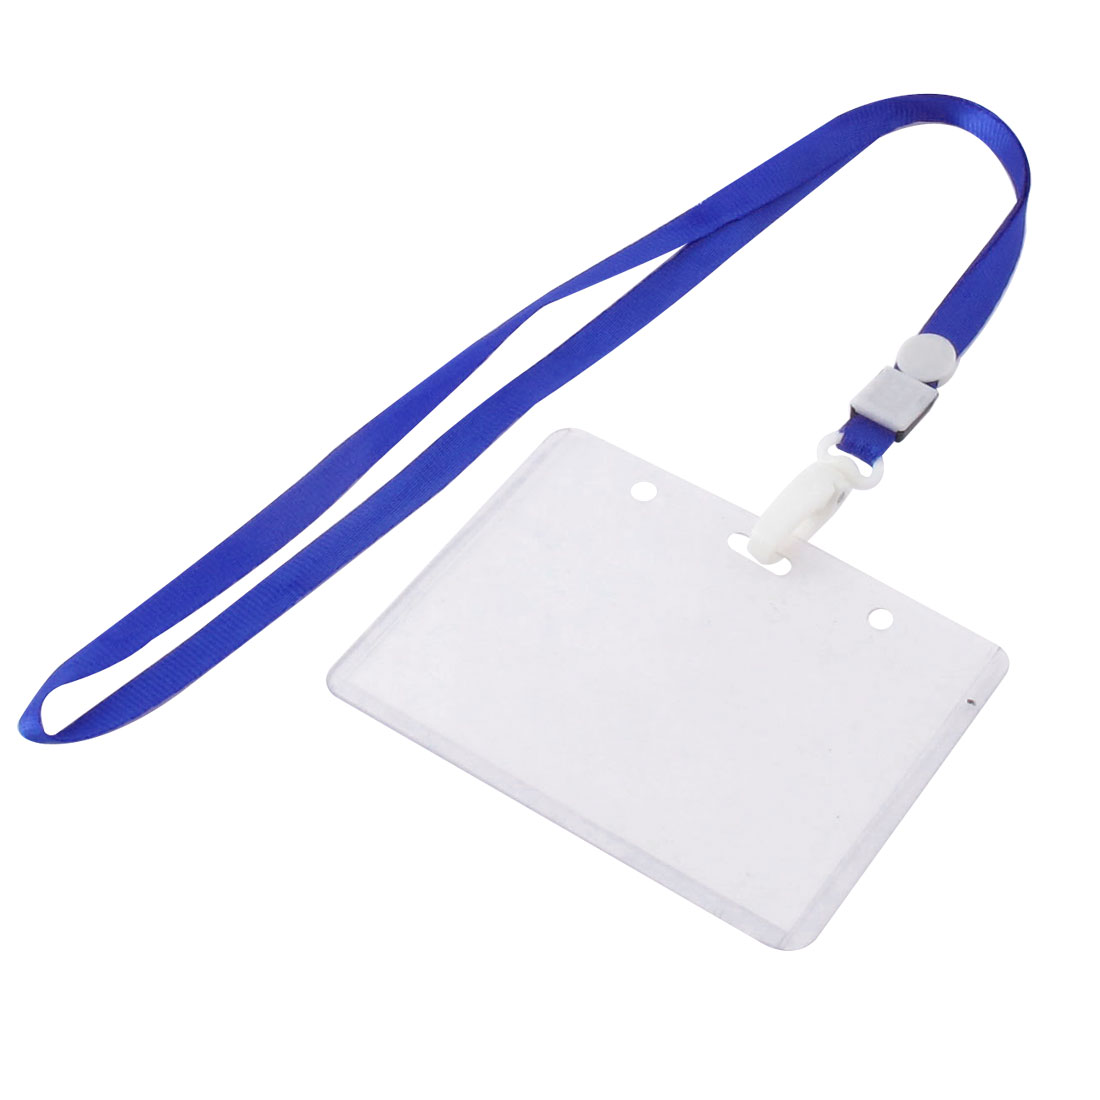 Neck Strap Plastic Horizontal ID Name Employee Card Tag Holder Blue Clear